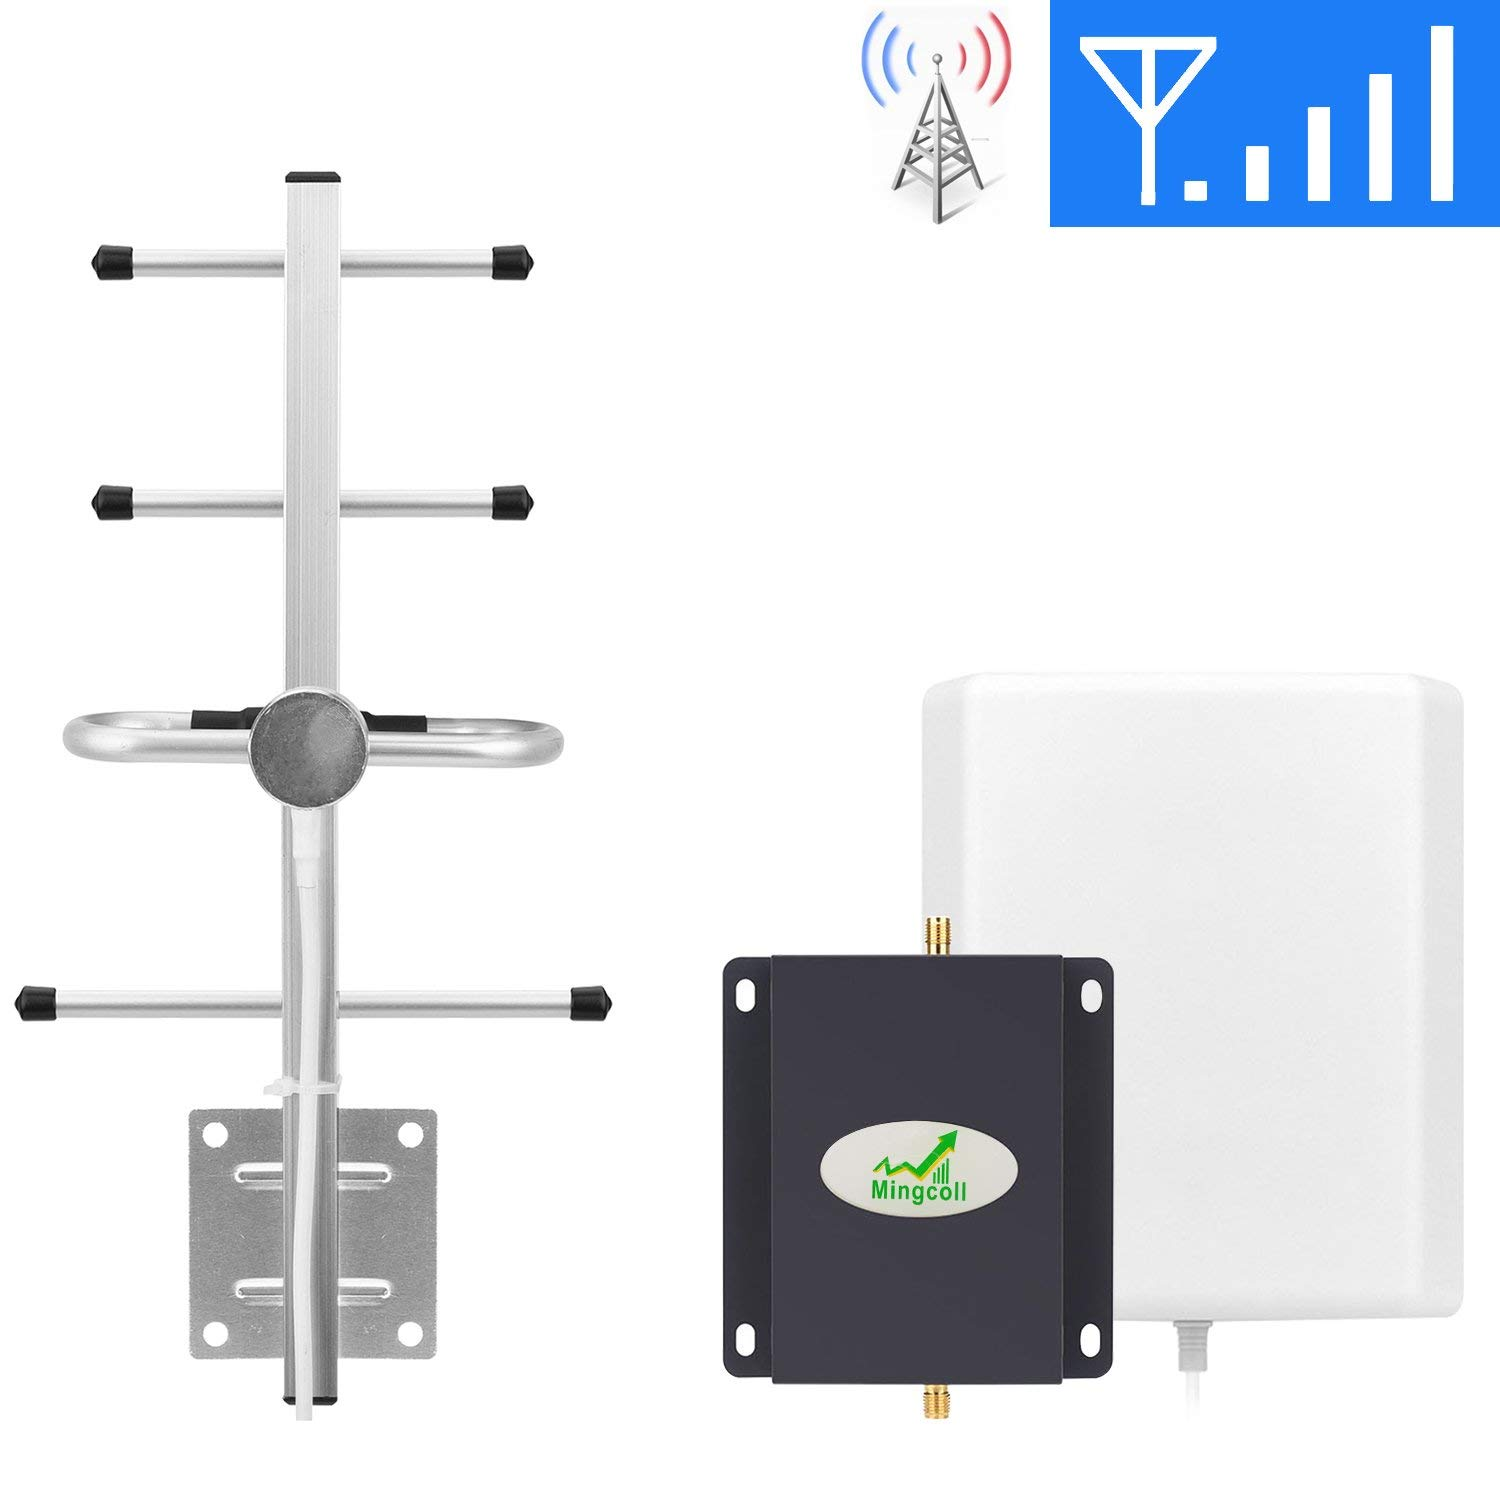 Mobile Cell Phone Signal Booster Verizon 700Mhz Band 13 Cell Signal Booster Amplifier Mingcoll 4G LTE FDD Cellular Signal Repeater Booster Home Office (BV70-S8W)